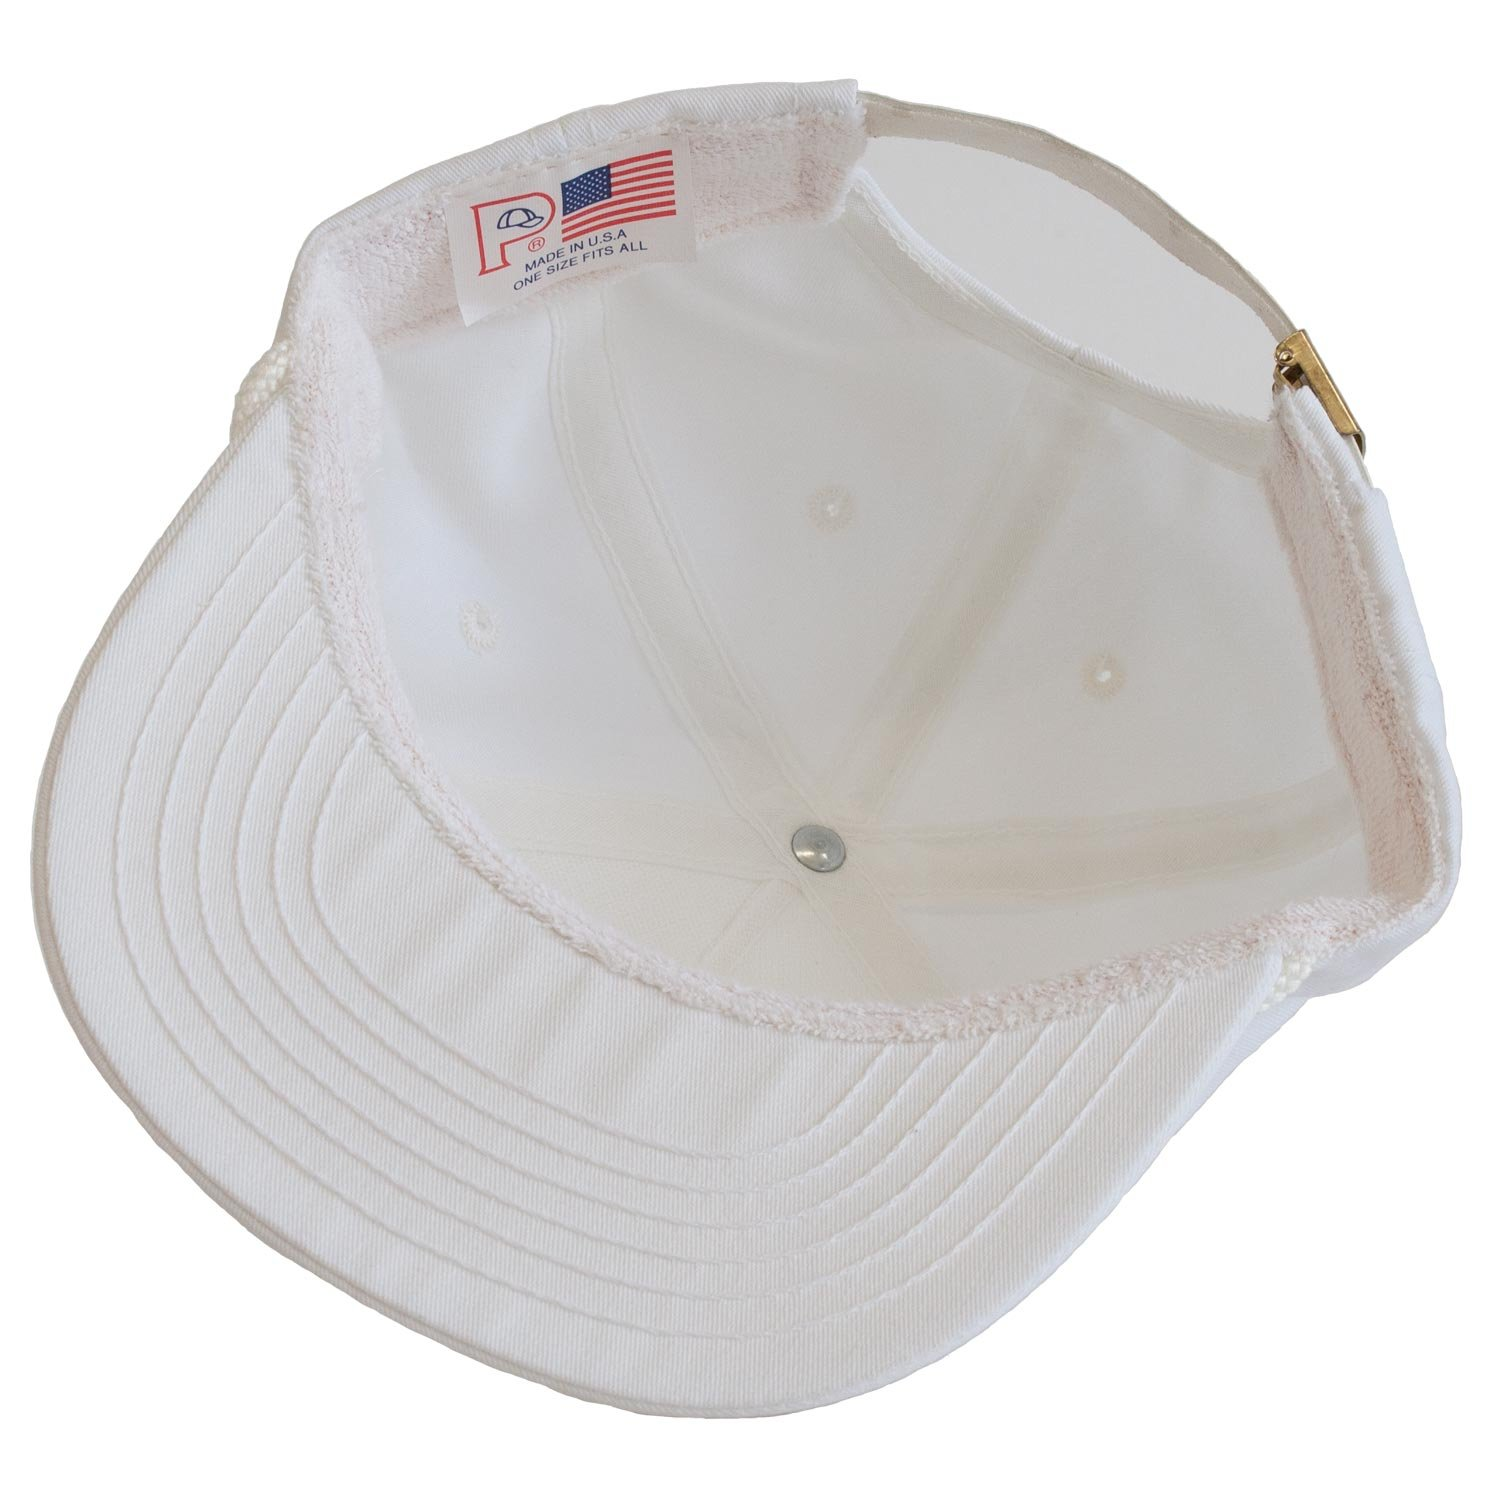 Levine Hat Co 100% Cotton Twill Structured Baseball Cap with Rope Accent  Adjustable Size (3+ Colors) (One Size 4f90314e9103